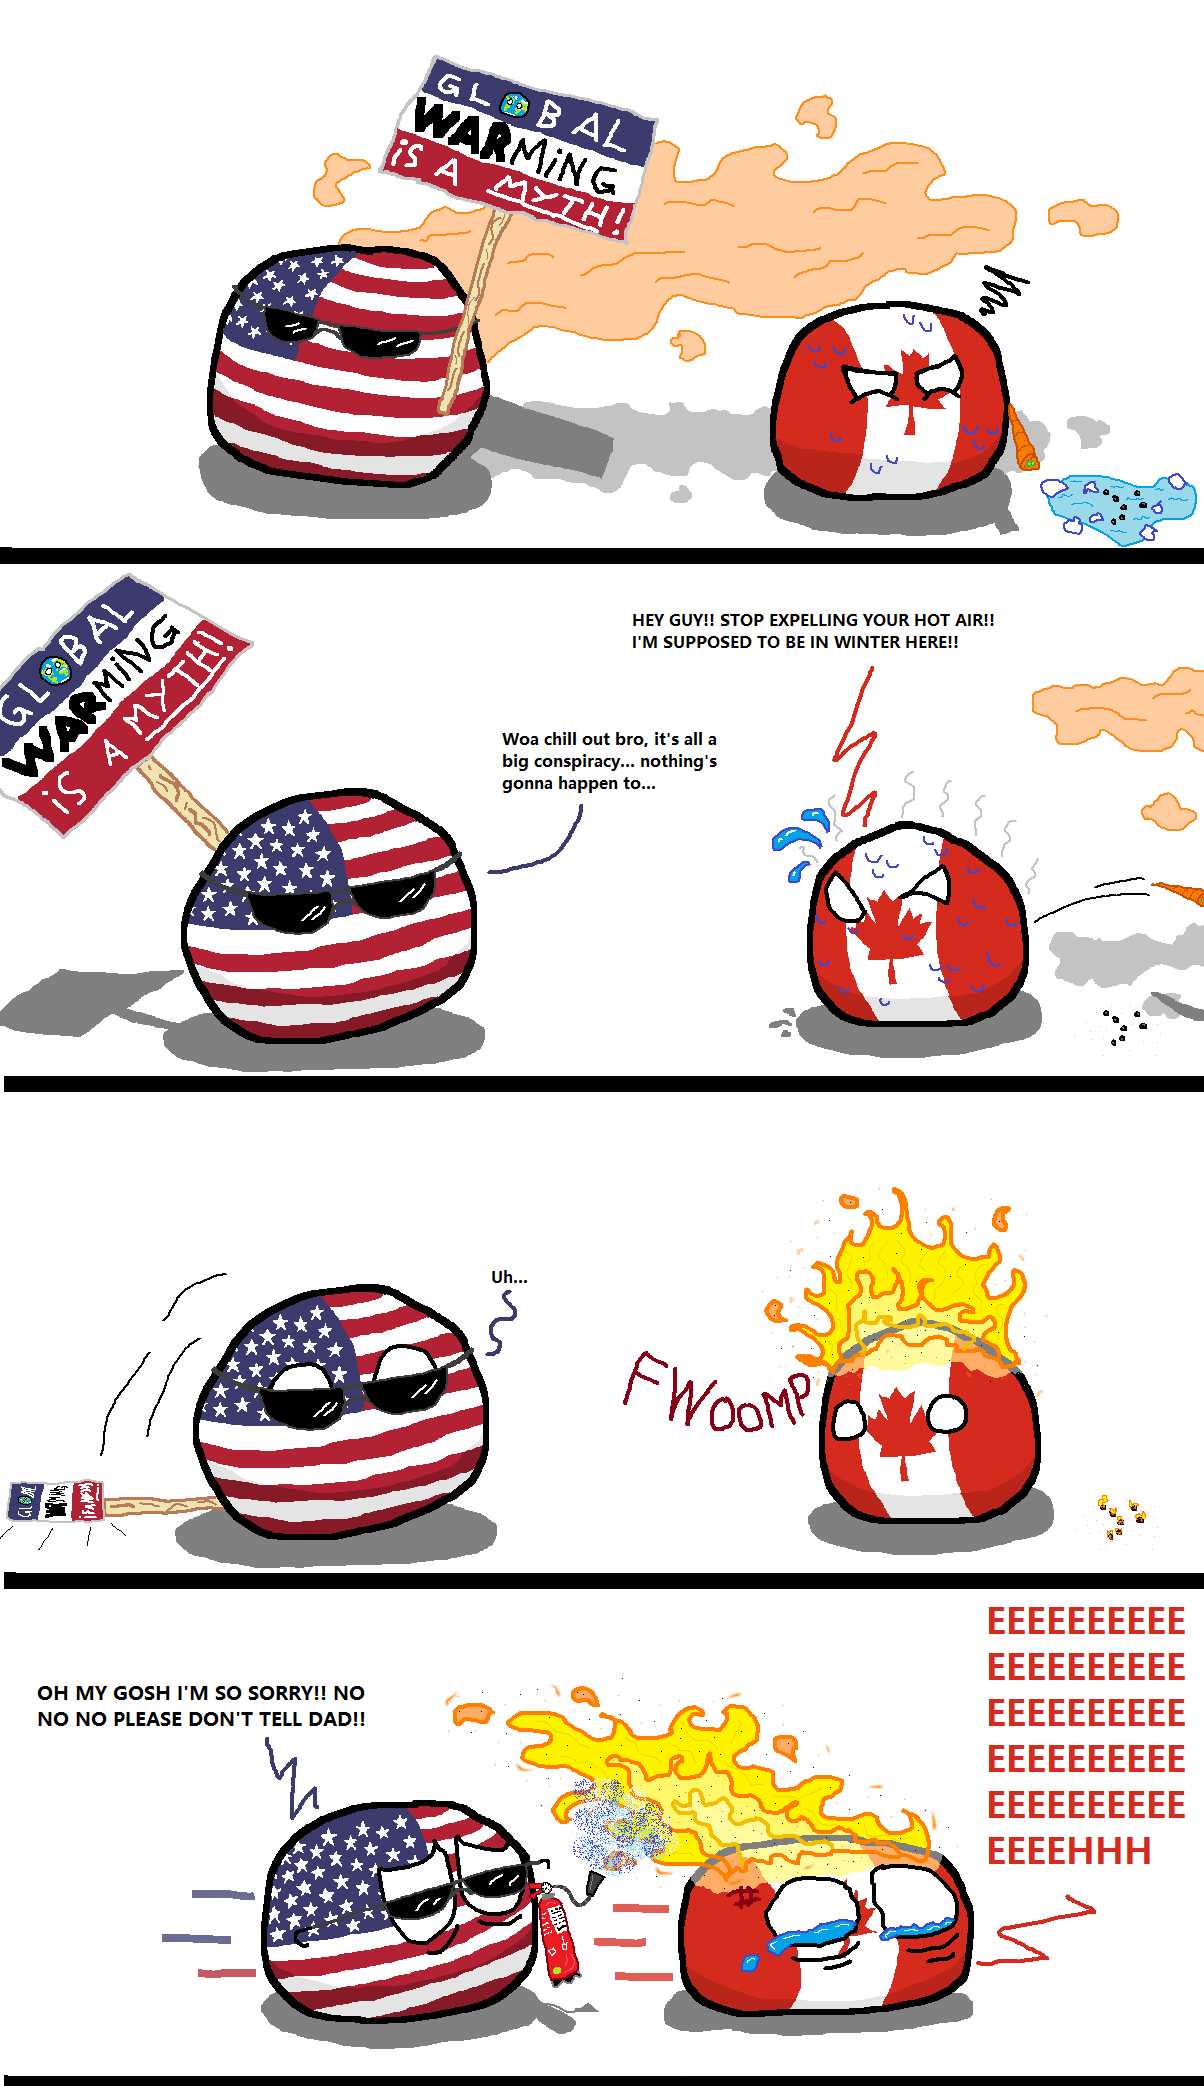 That S So True Though Global Warming Is A Real Thing And We Have To Step Up And Stop It Canada Memes Funny Pictures Funny Comics